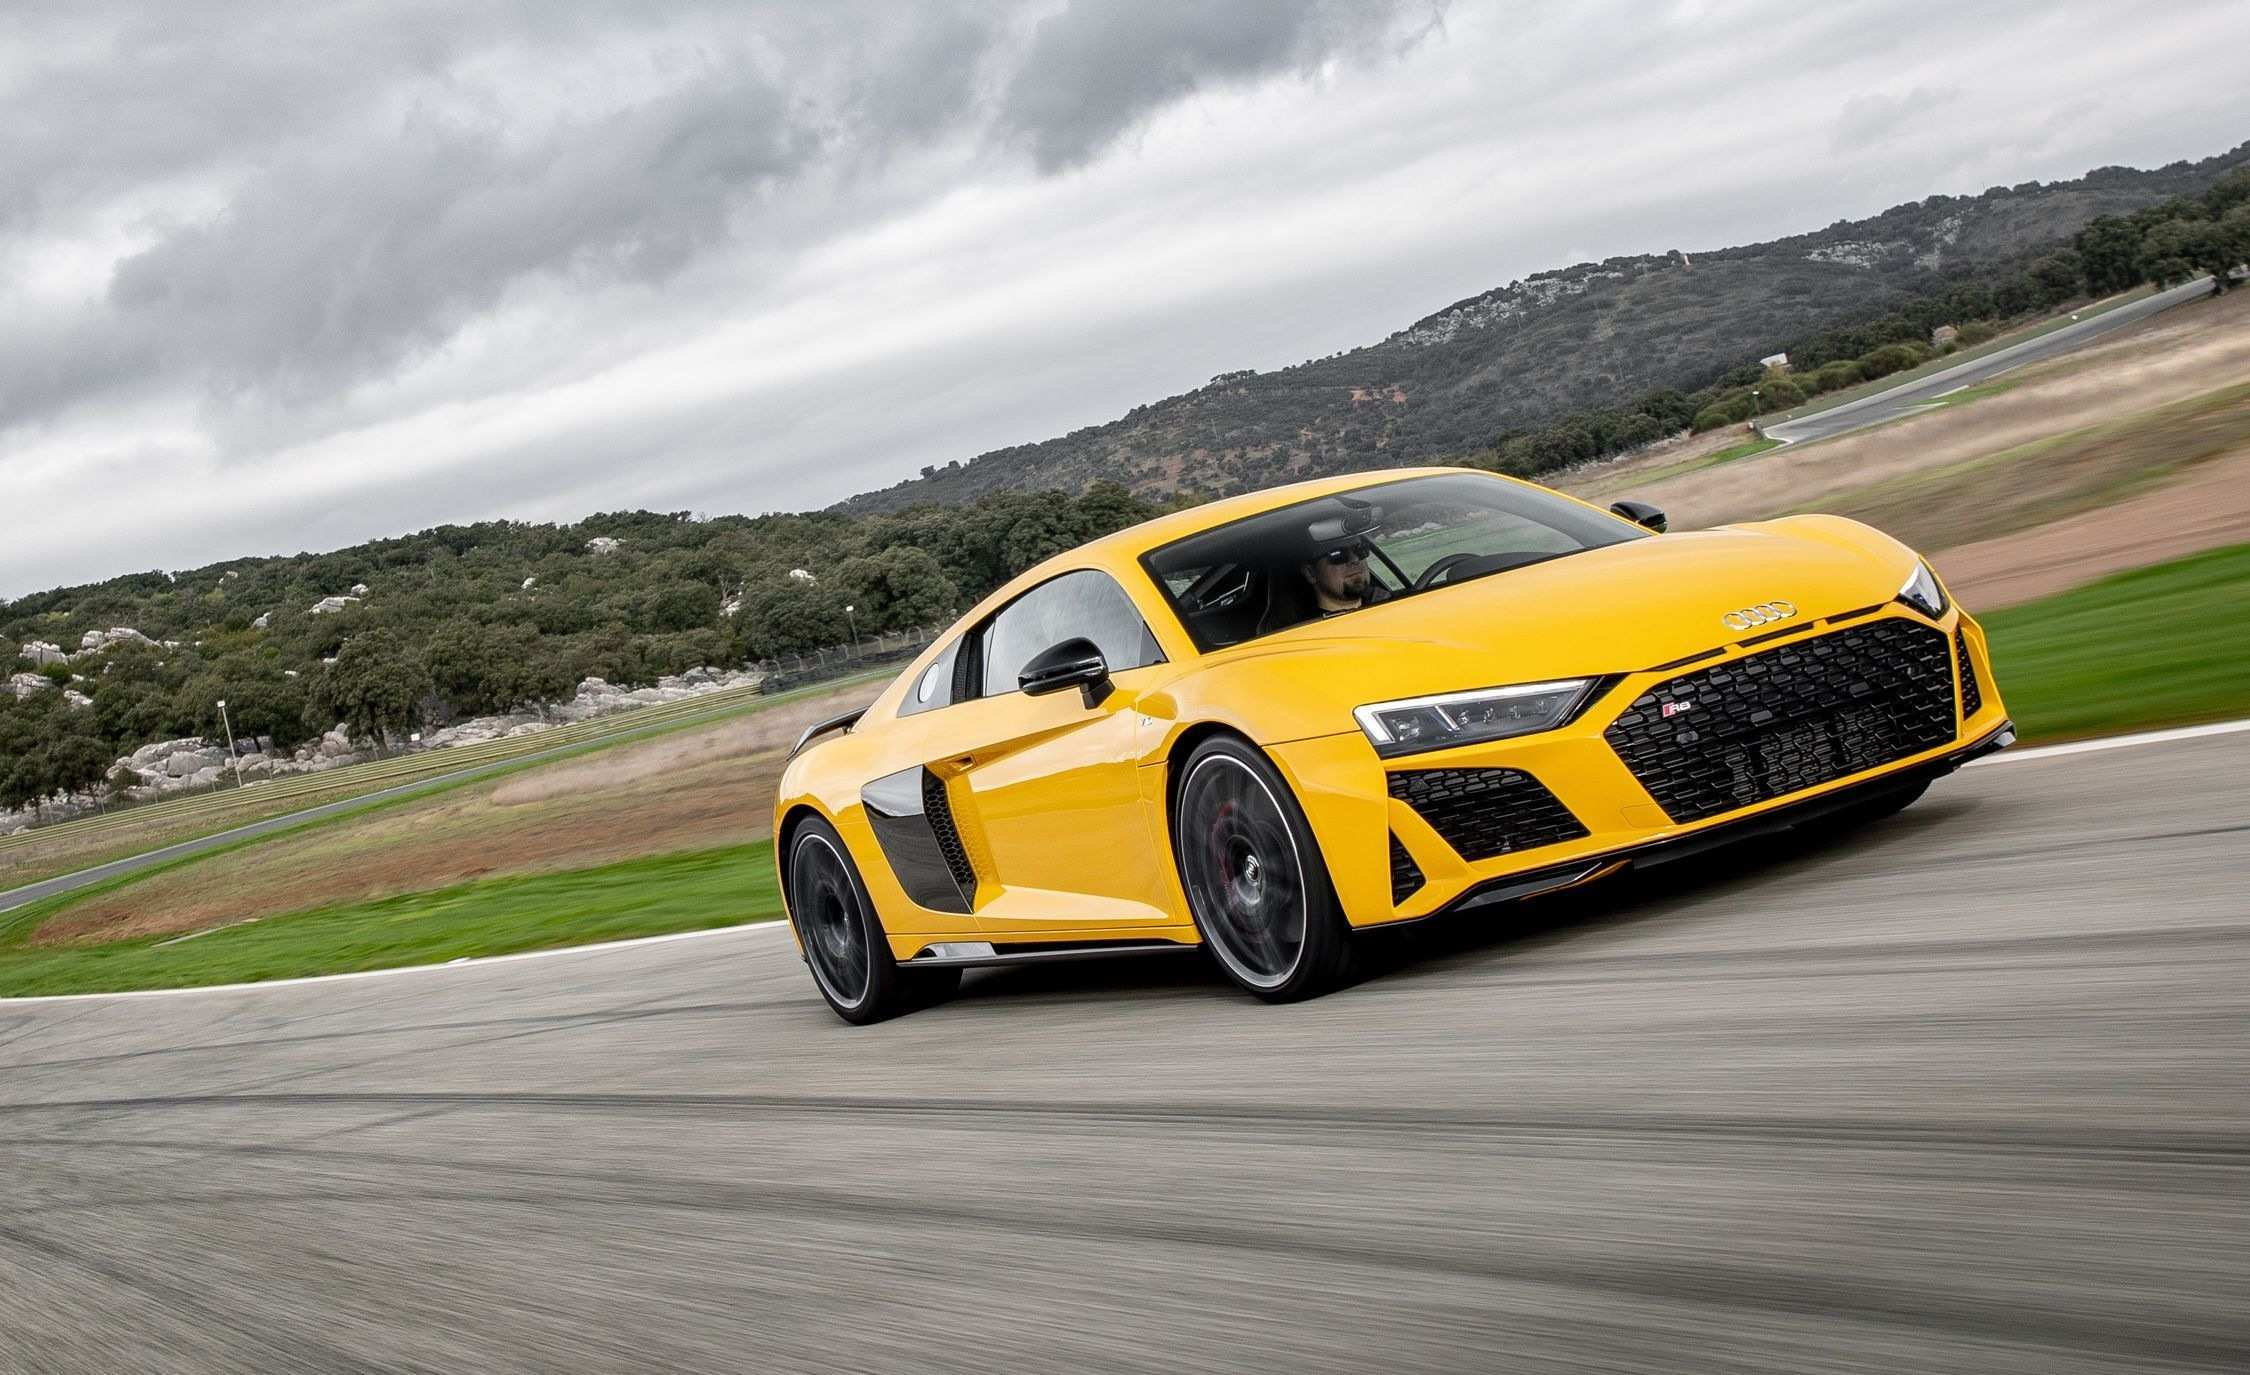 30 All New 2019 Audi R8 LMXs Exterior And Interior